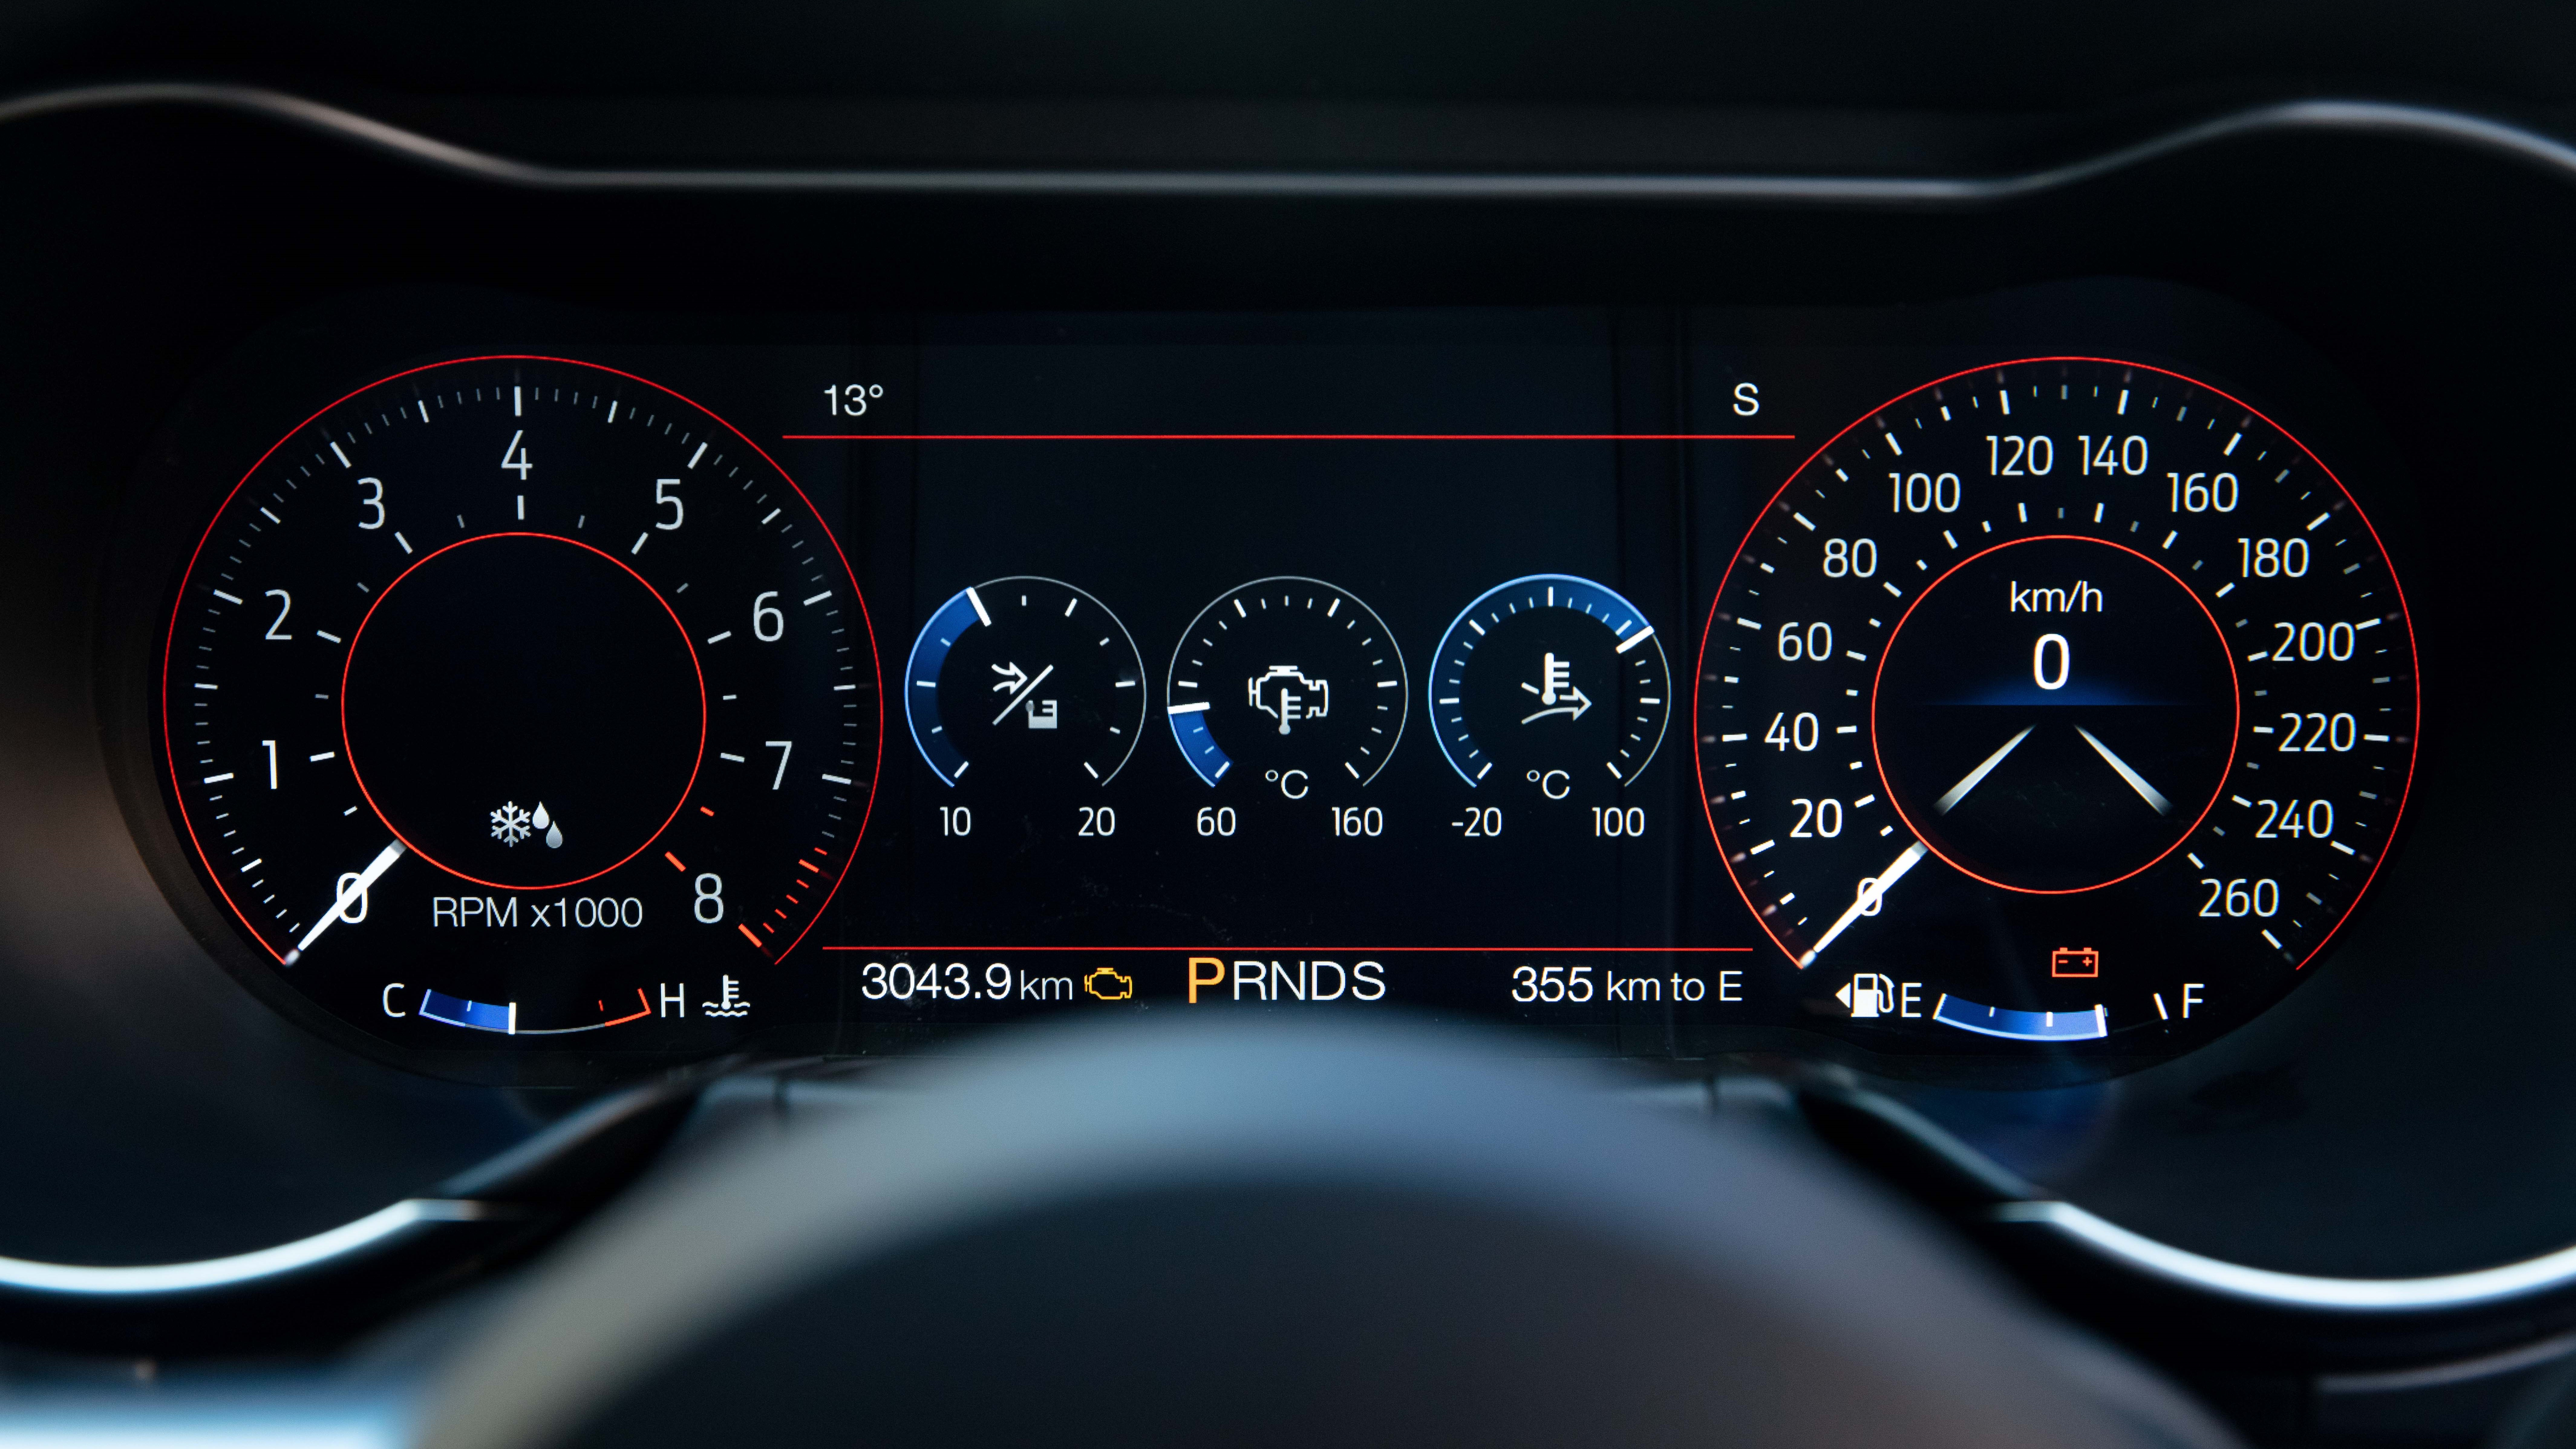 2018 Ford Mustang digital dashboard - Normal layout.